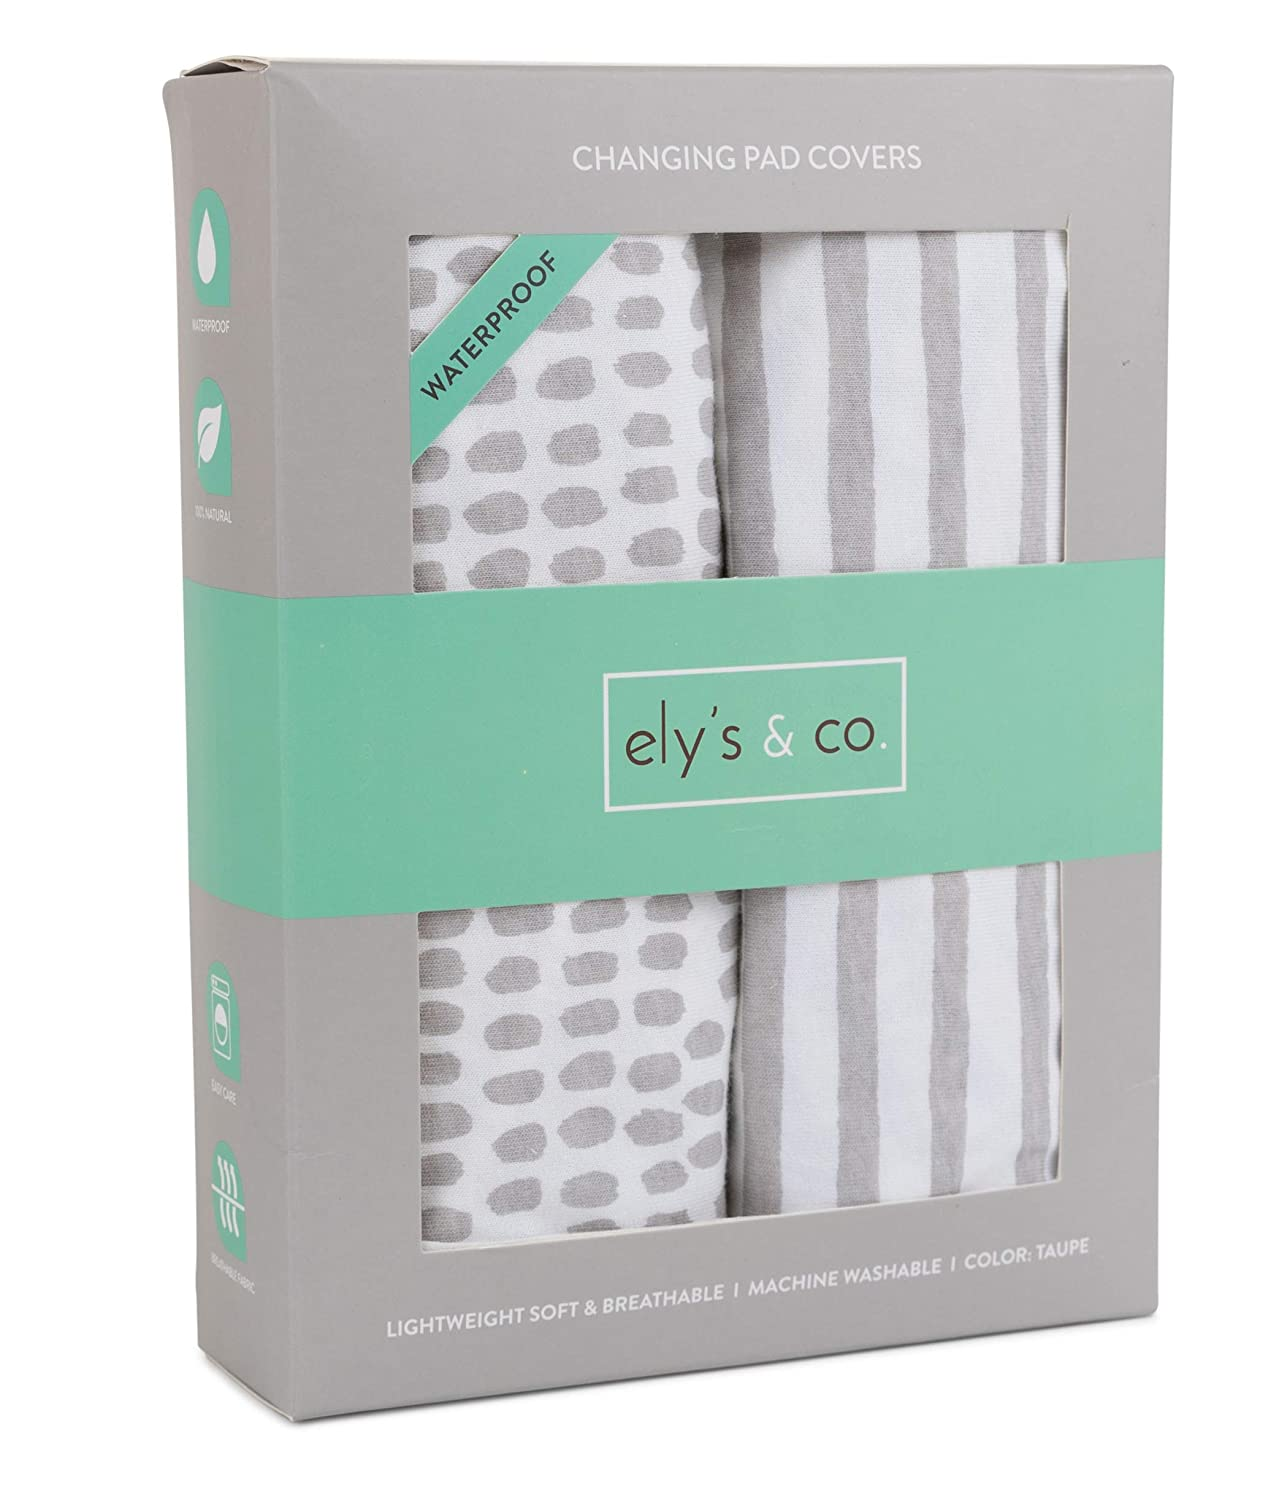 Waterproof Changing Pad Cover Set 100% Jersey Cotton 2 Pack | No Need for Changing Liner | Taupe Stripes and Spalsh by Ely's & Co. Ely's & Co.